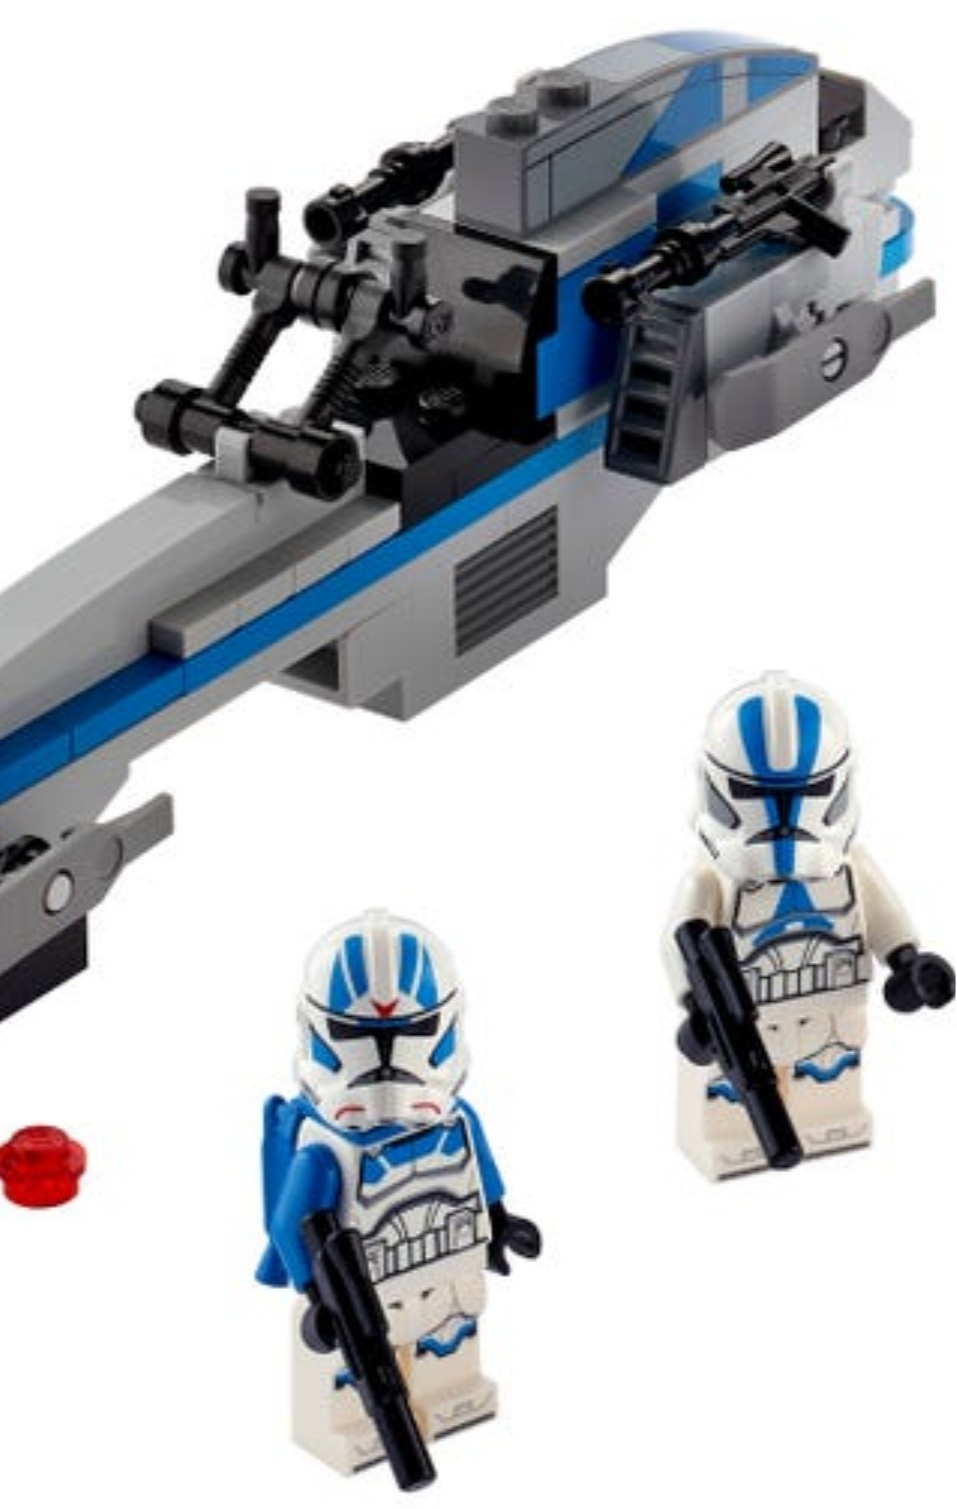 Revealed Lego Star Wars 75280 501st Legion Clone Troopers The Brick Post